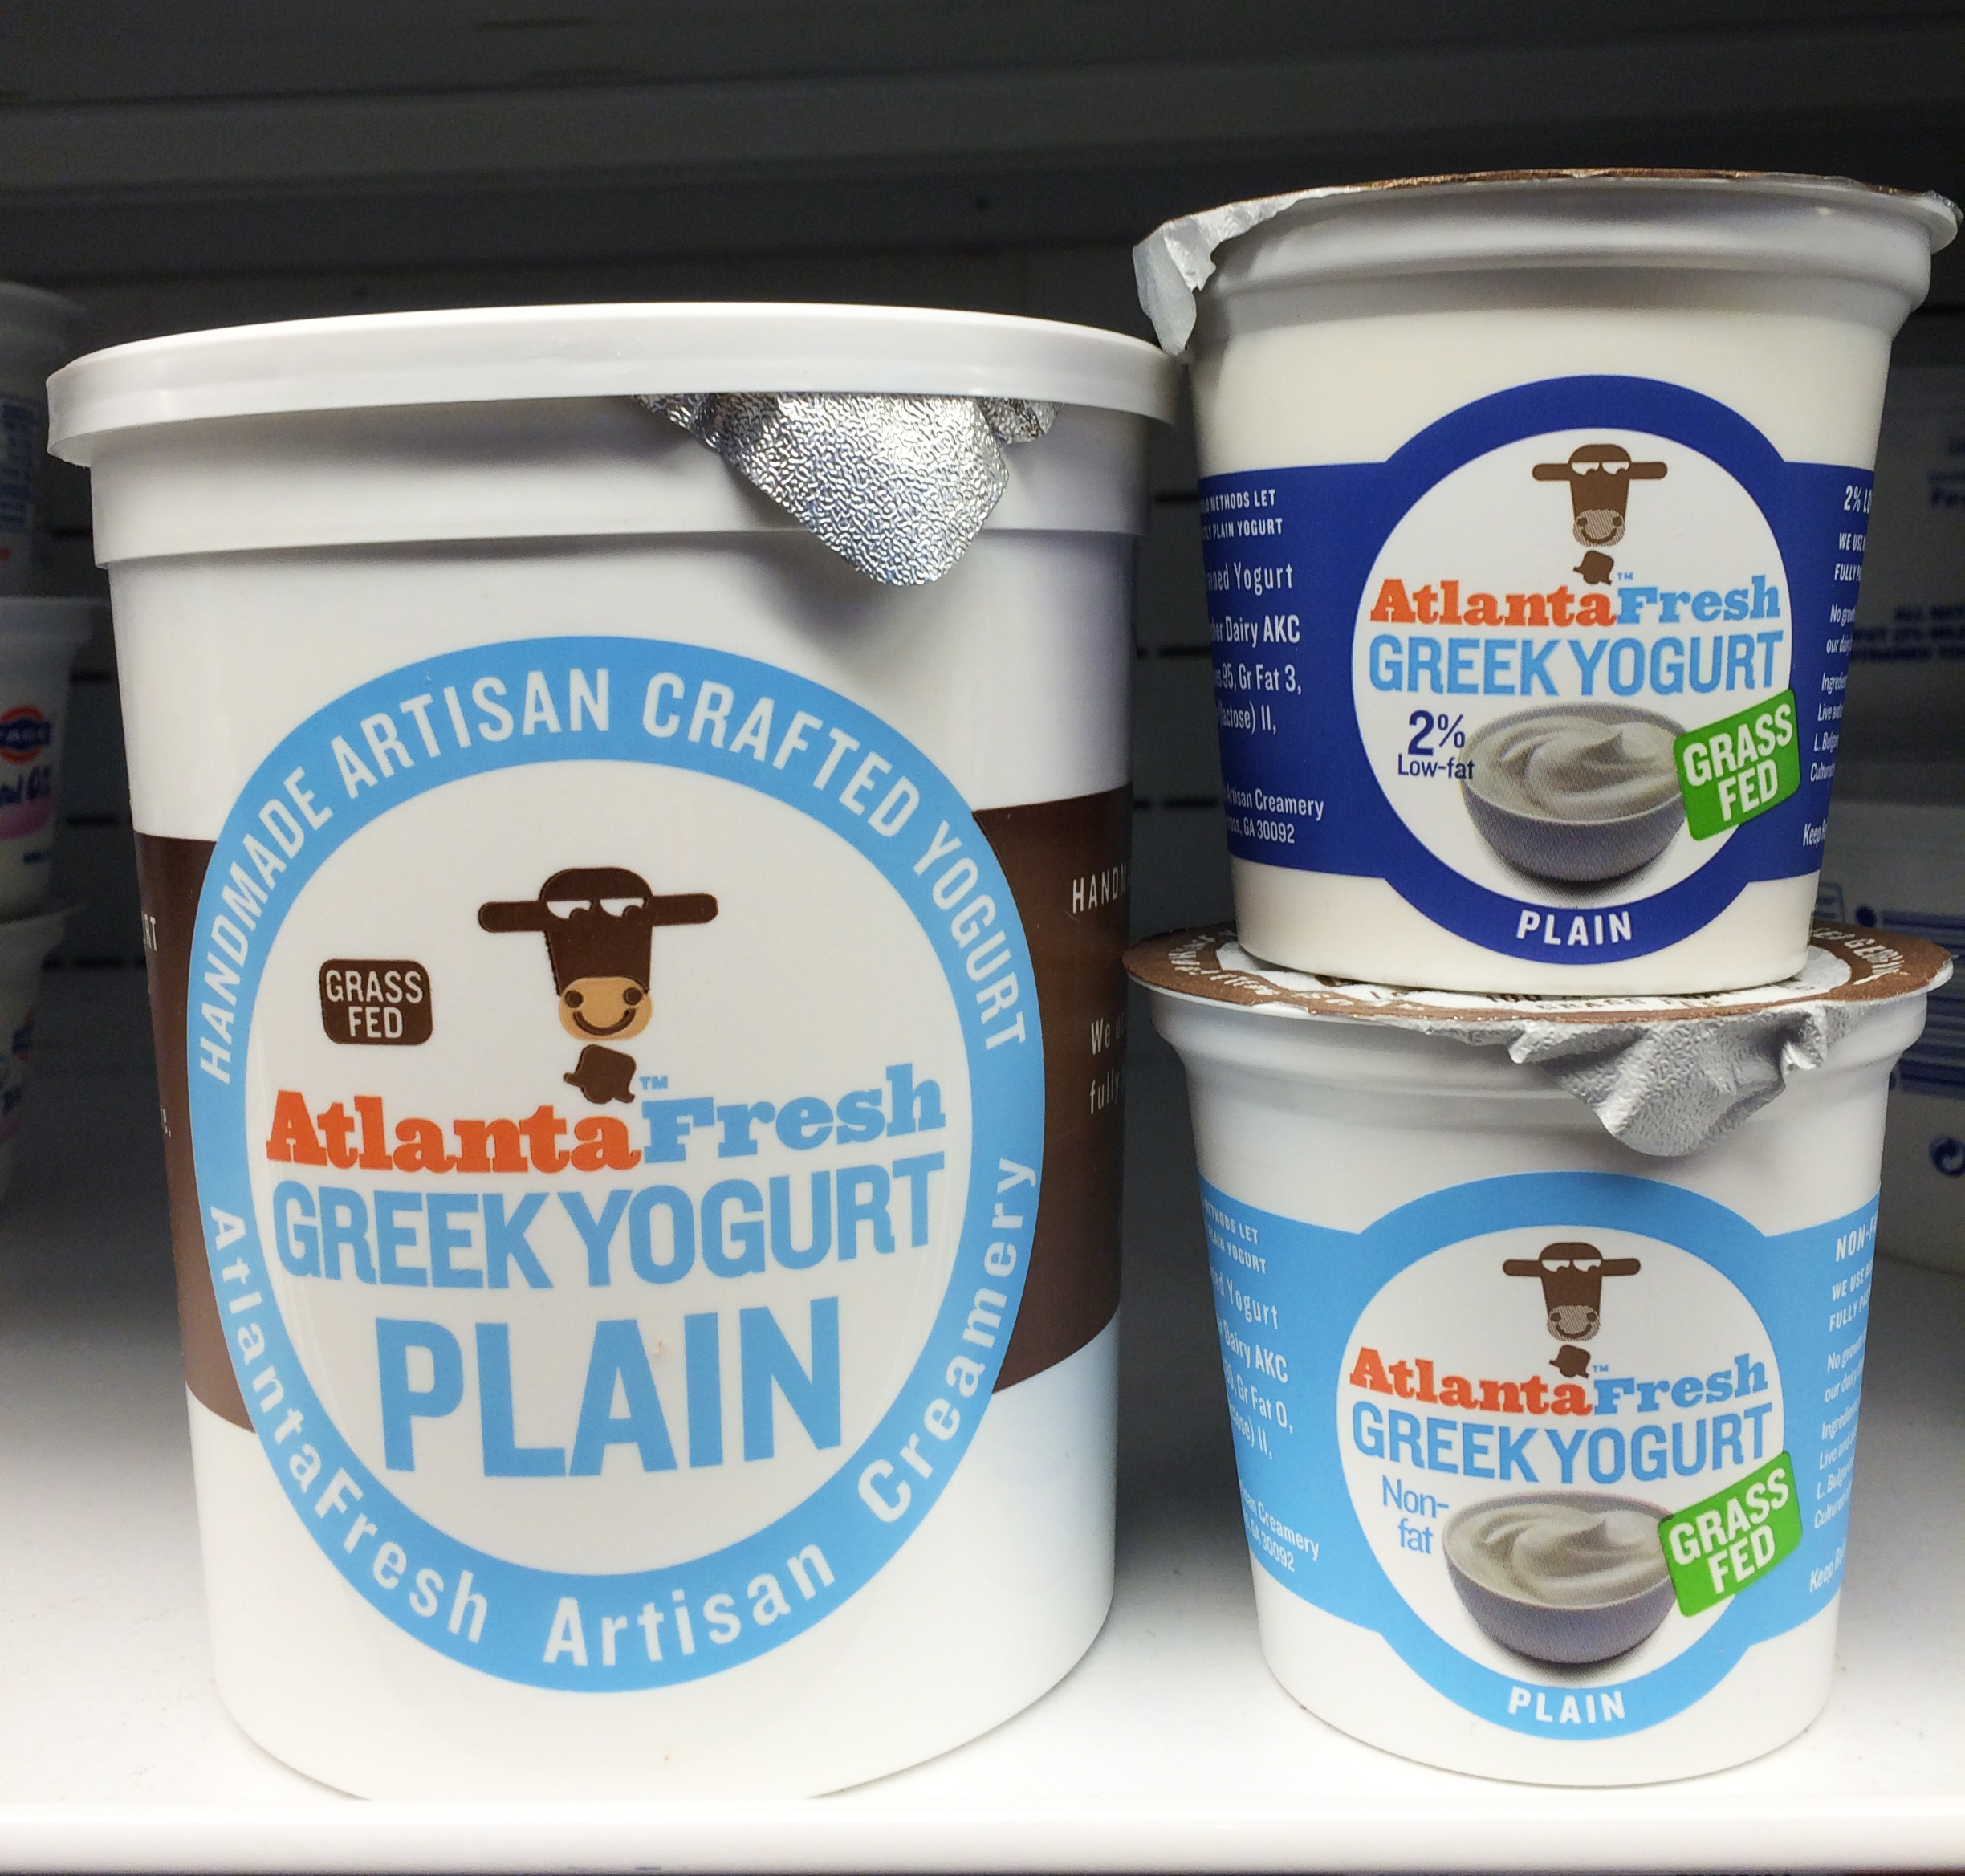 AtlantaFresh Plain Greek Yogurt